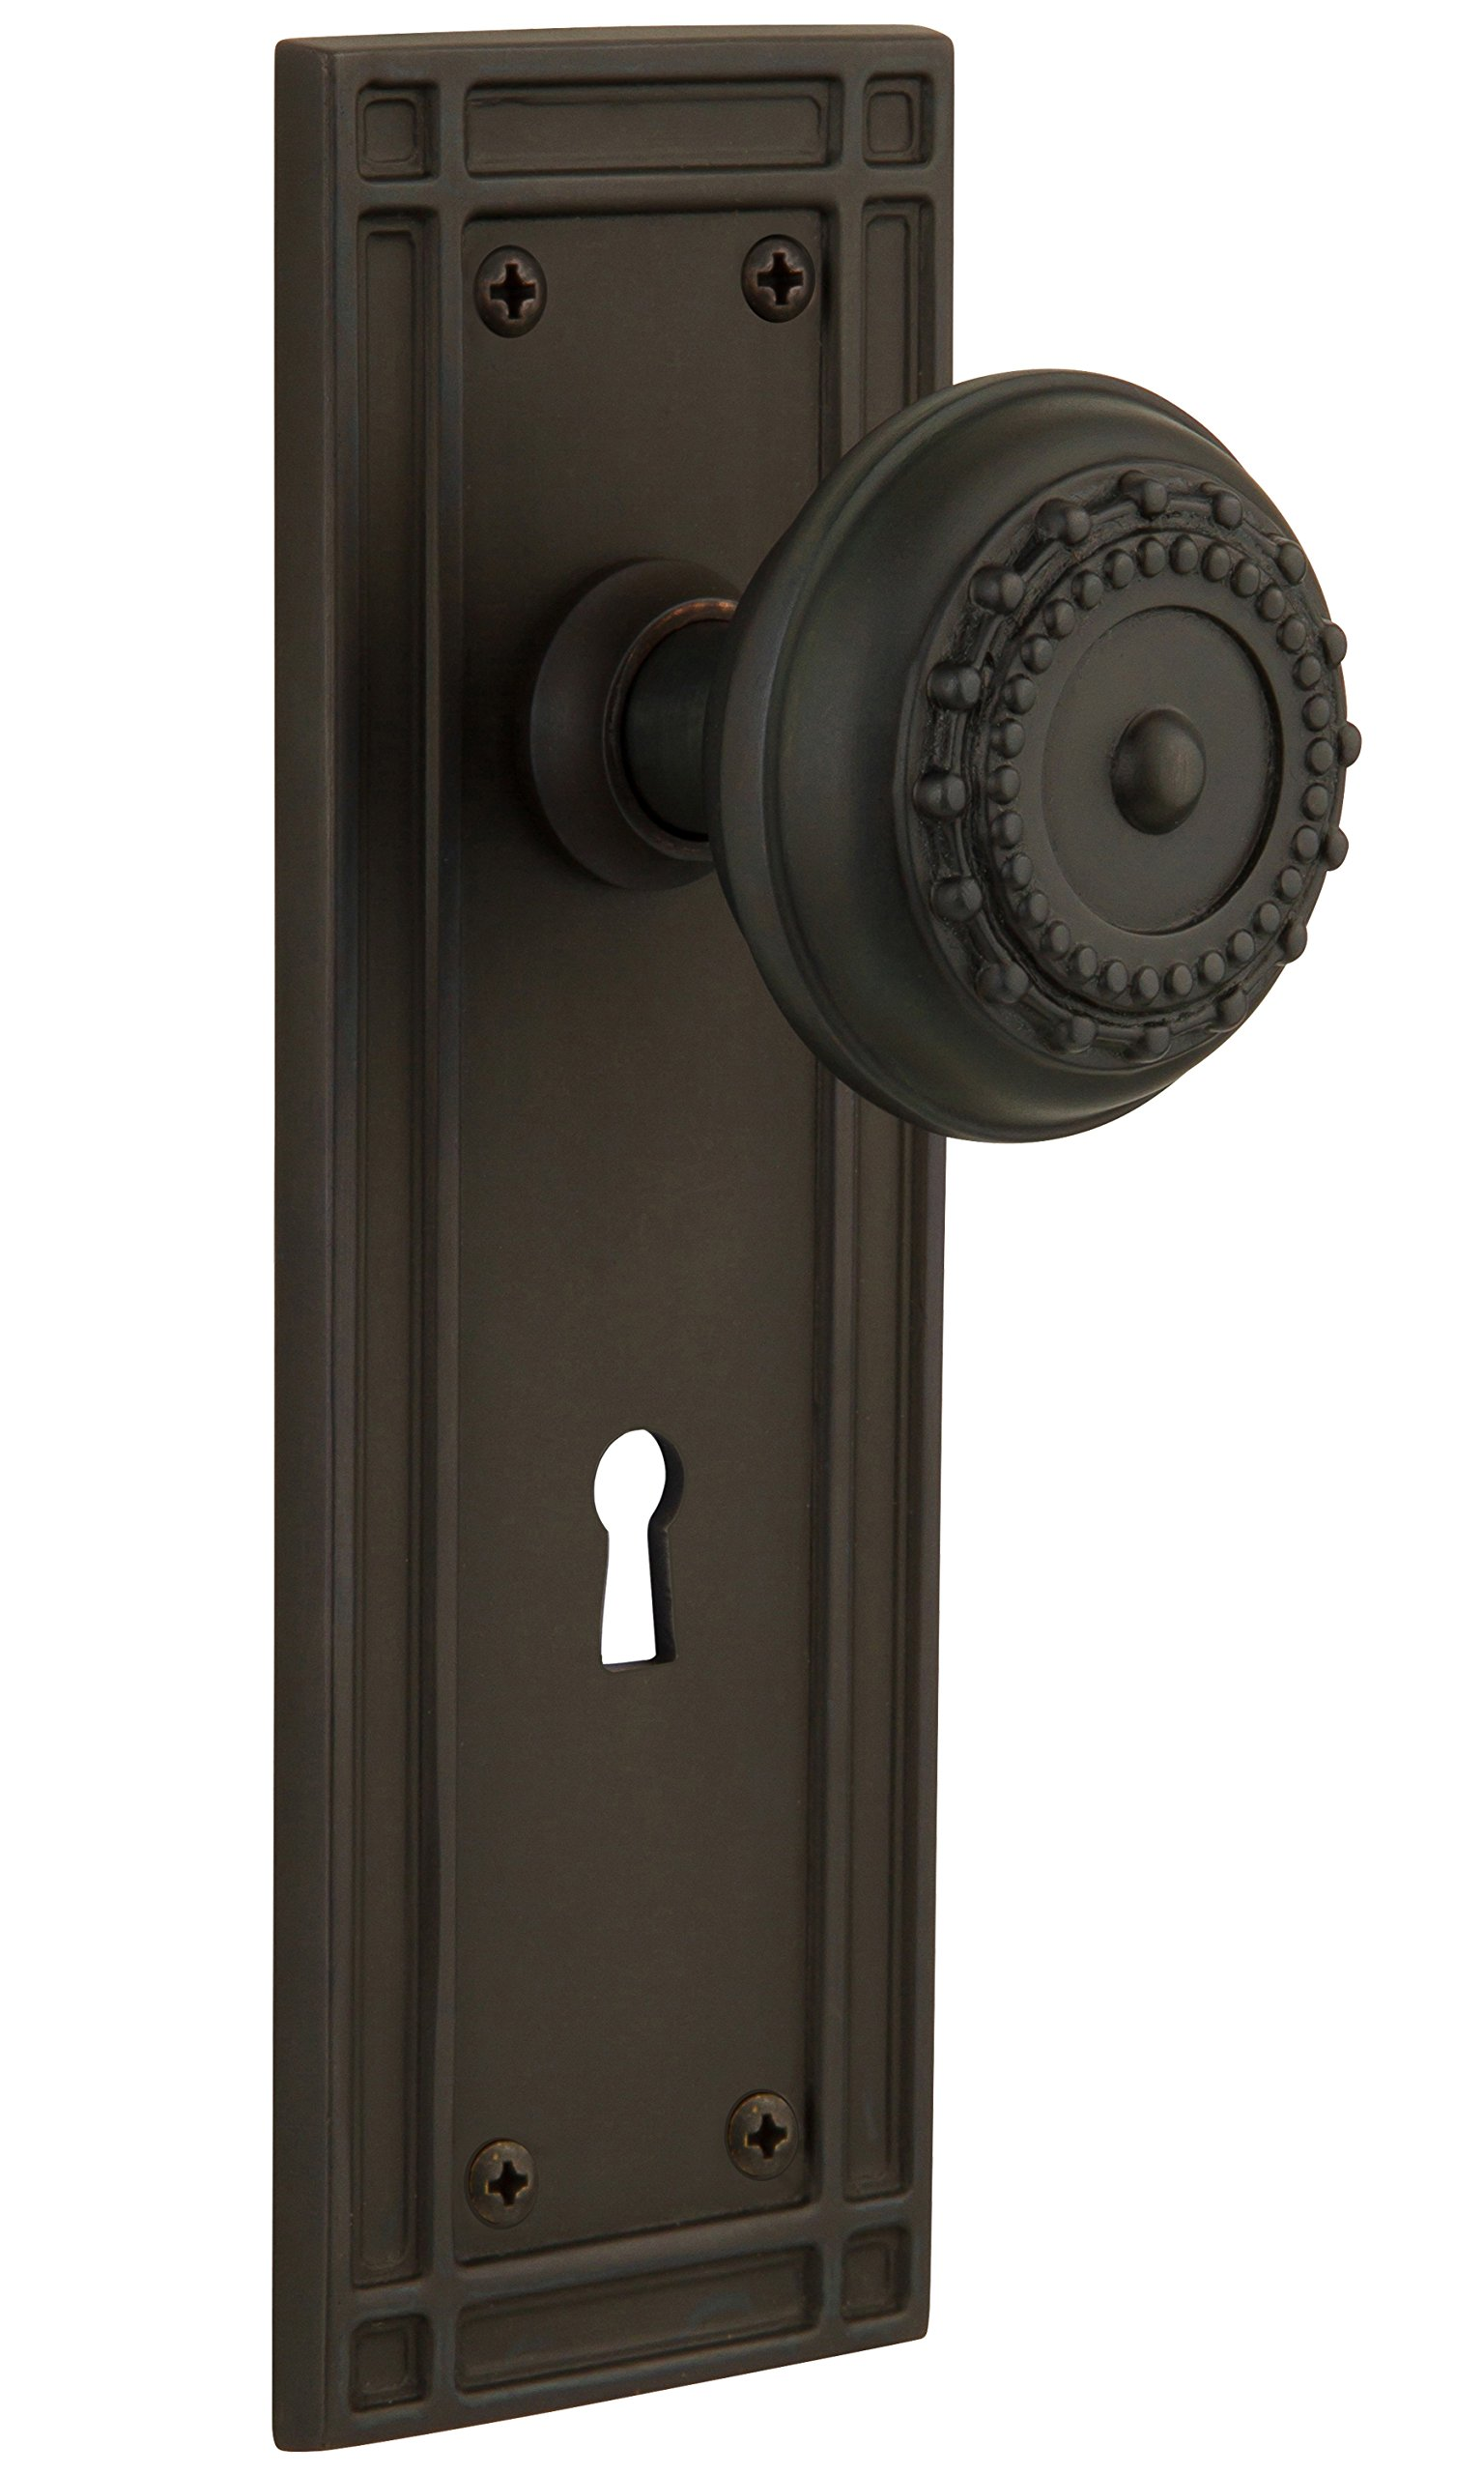 Nostalgic Warehouse Mission Plate with Keyhole Meadows Knob, Mortise - 2.25'', Oil-Rubbed Bronze